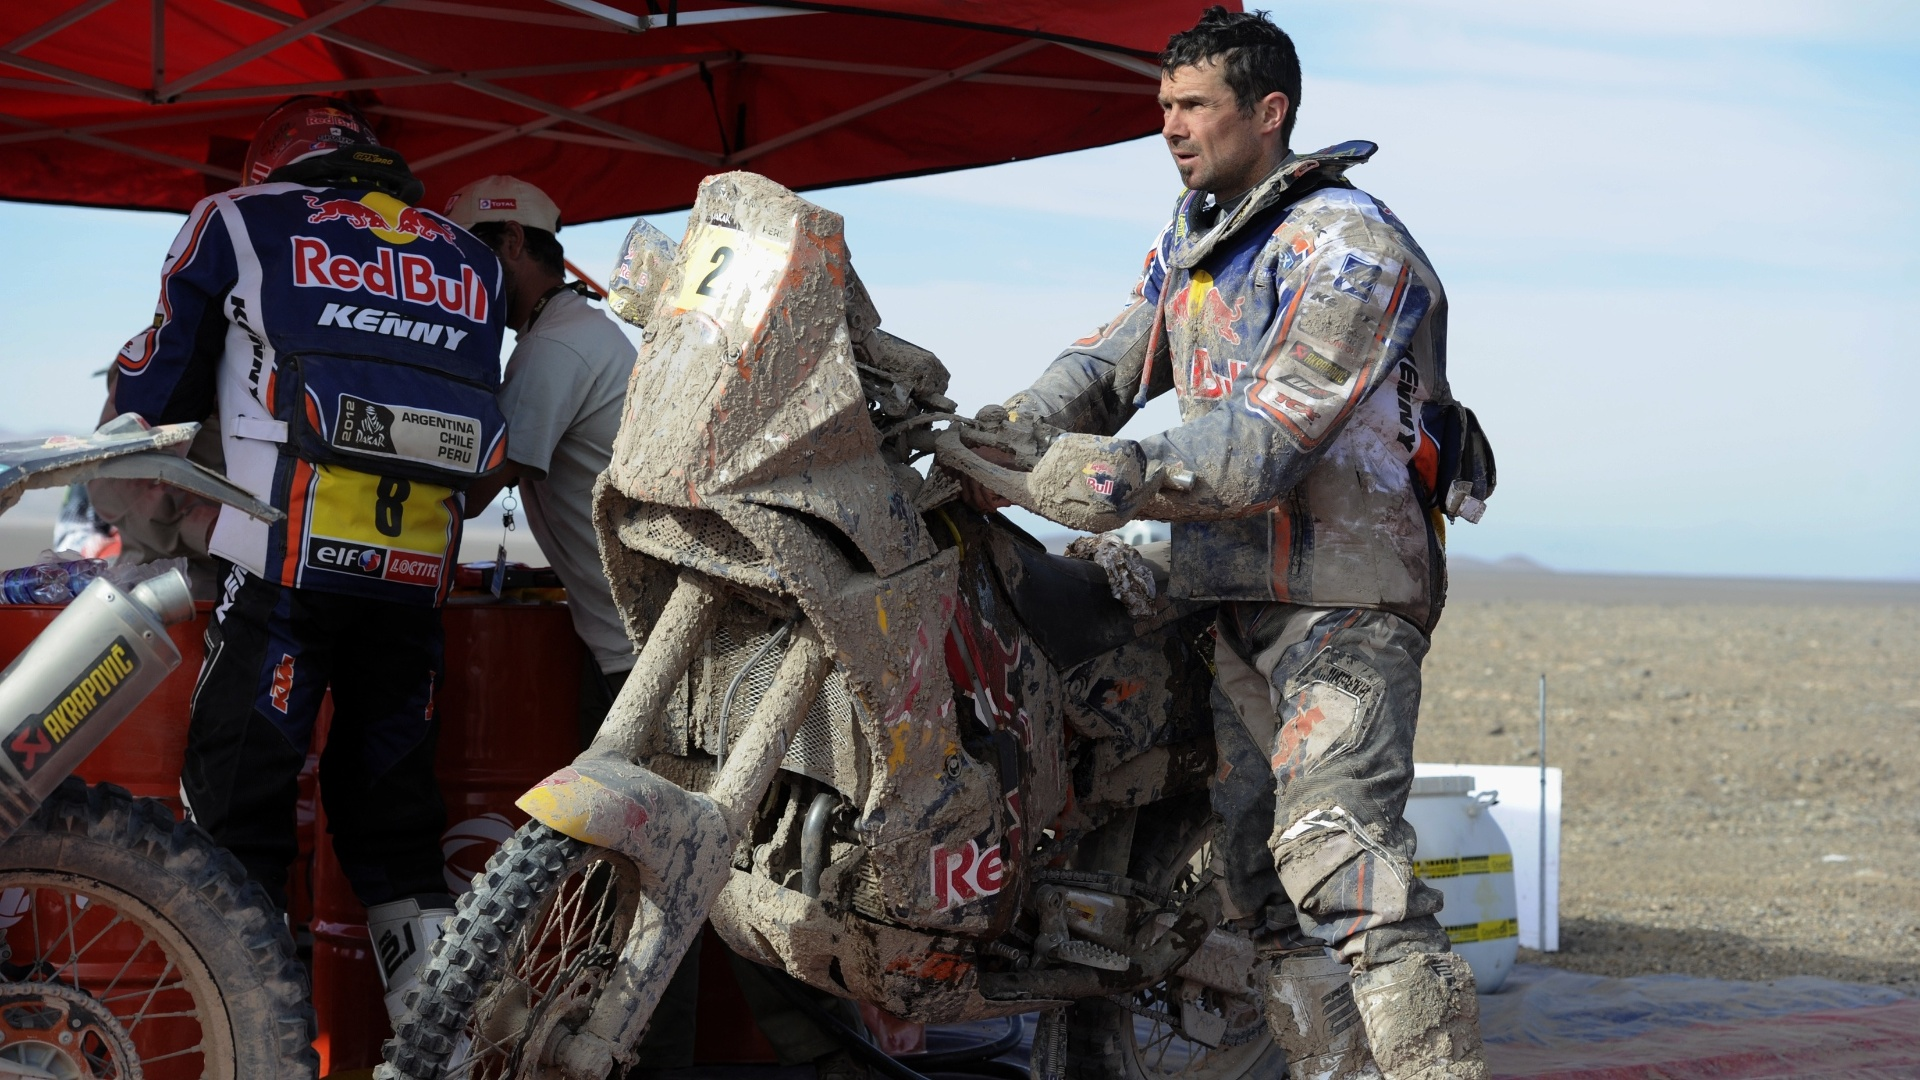 Francs Cyril Despres tenta limpar sua moto durante etapa do Rali Dakar em 2012